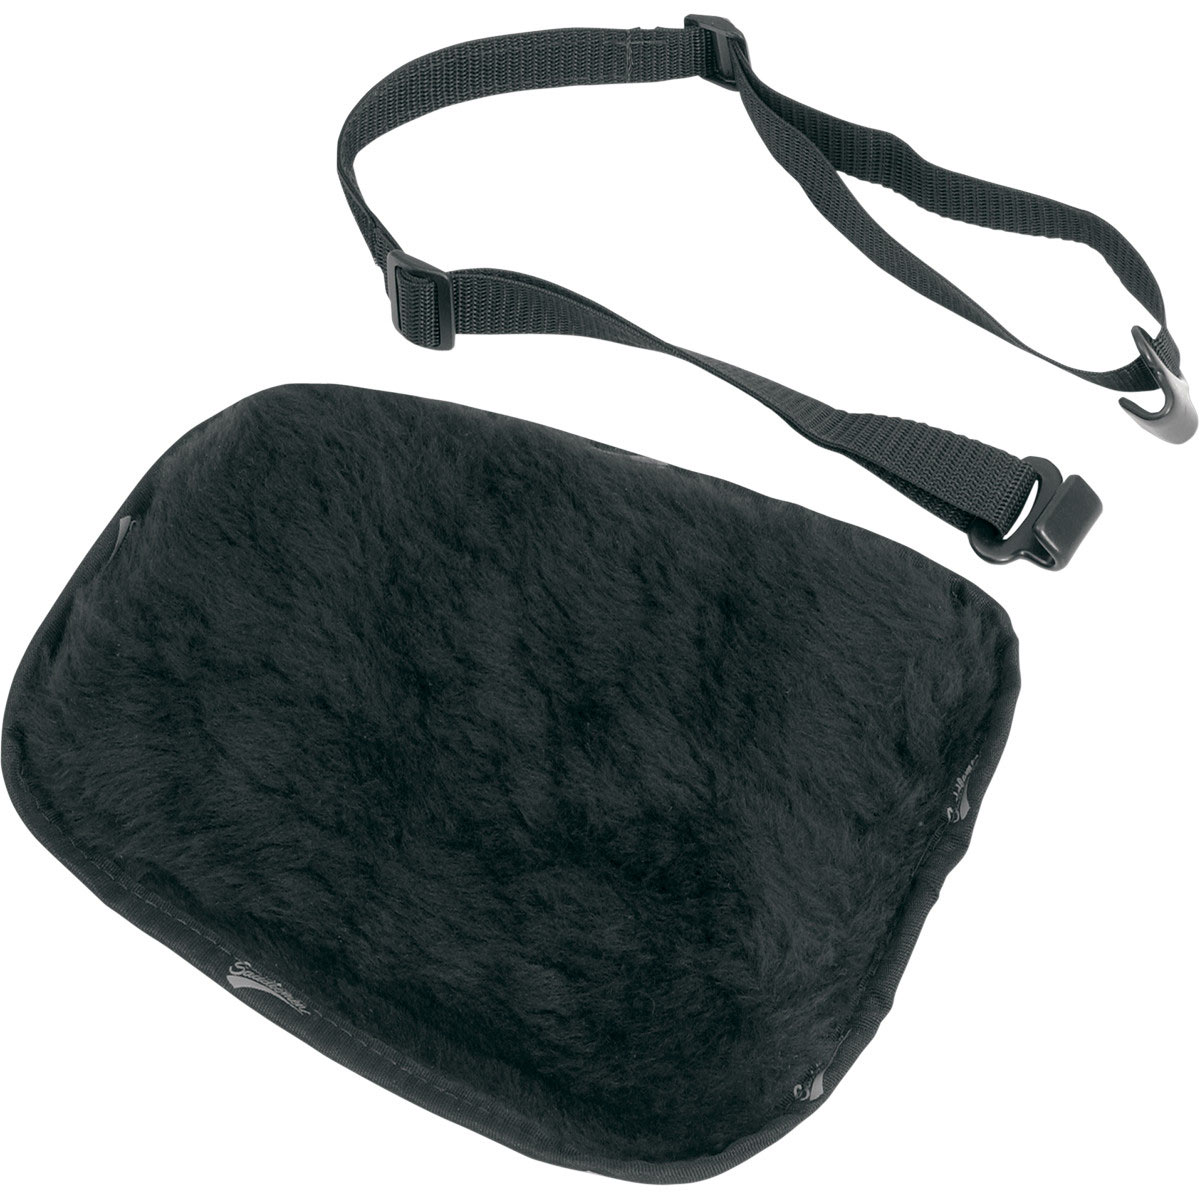 Breathable Fleece Pad